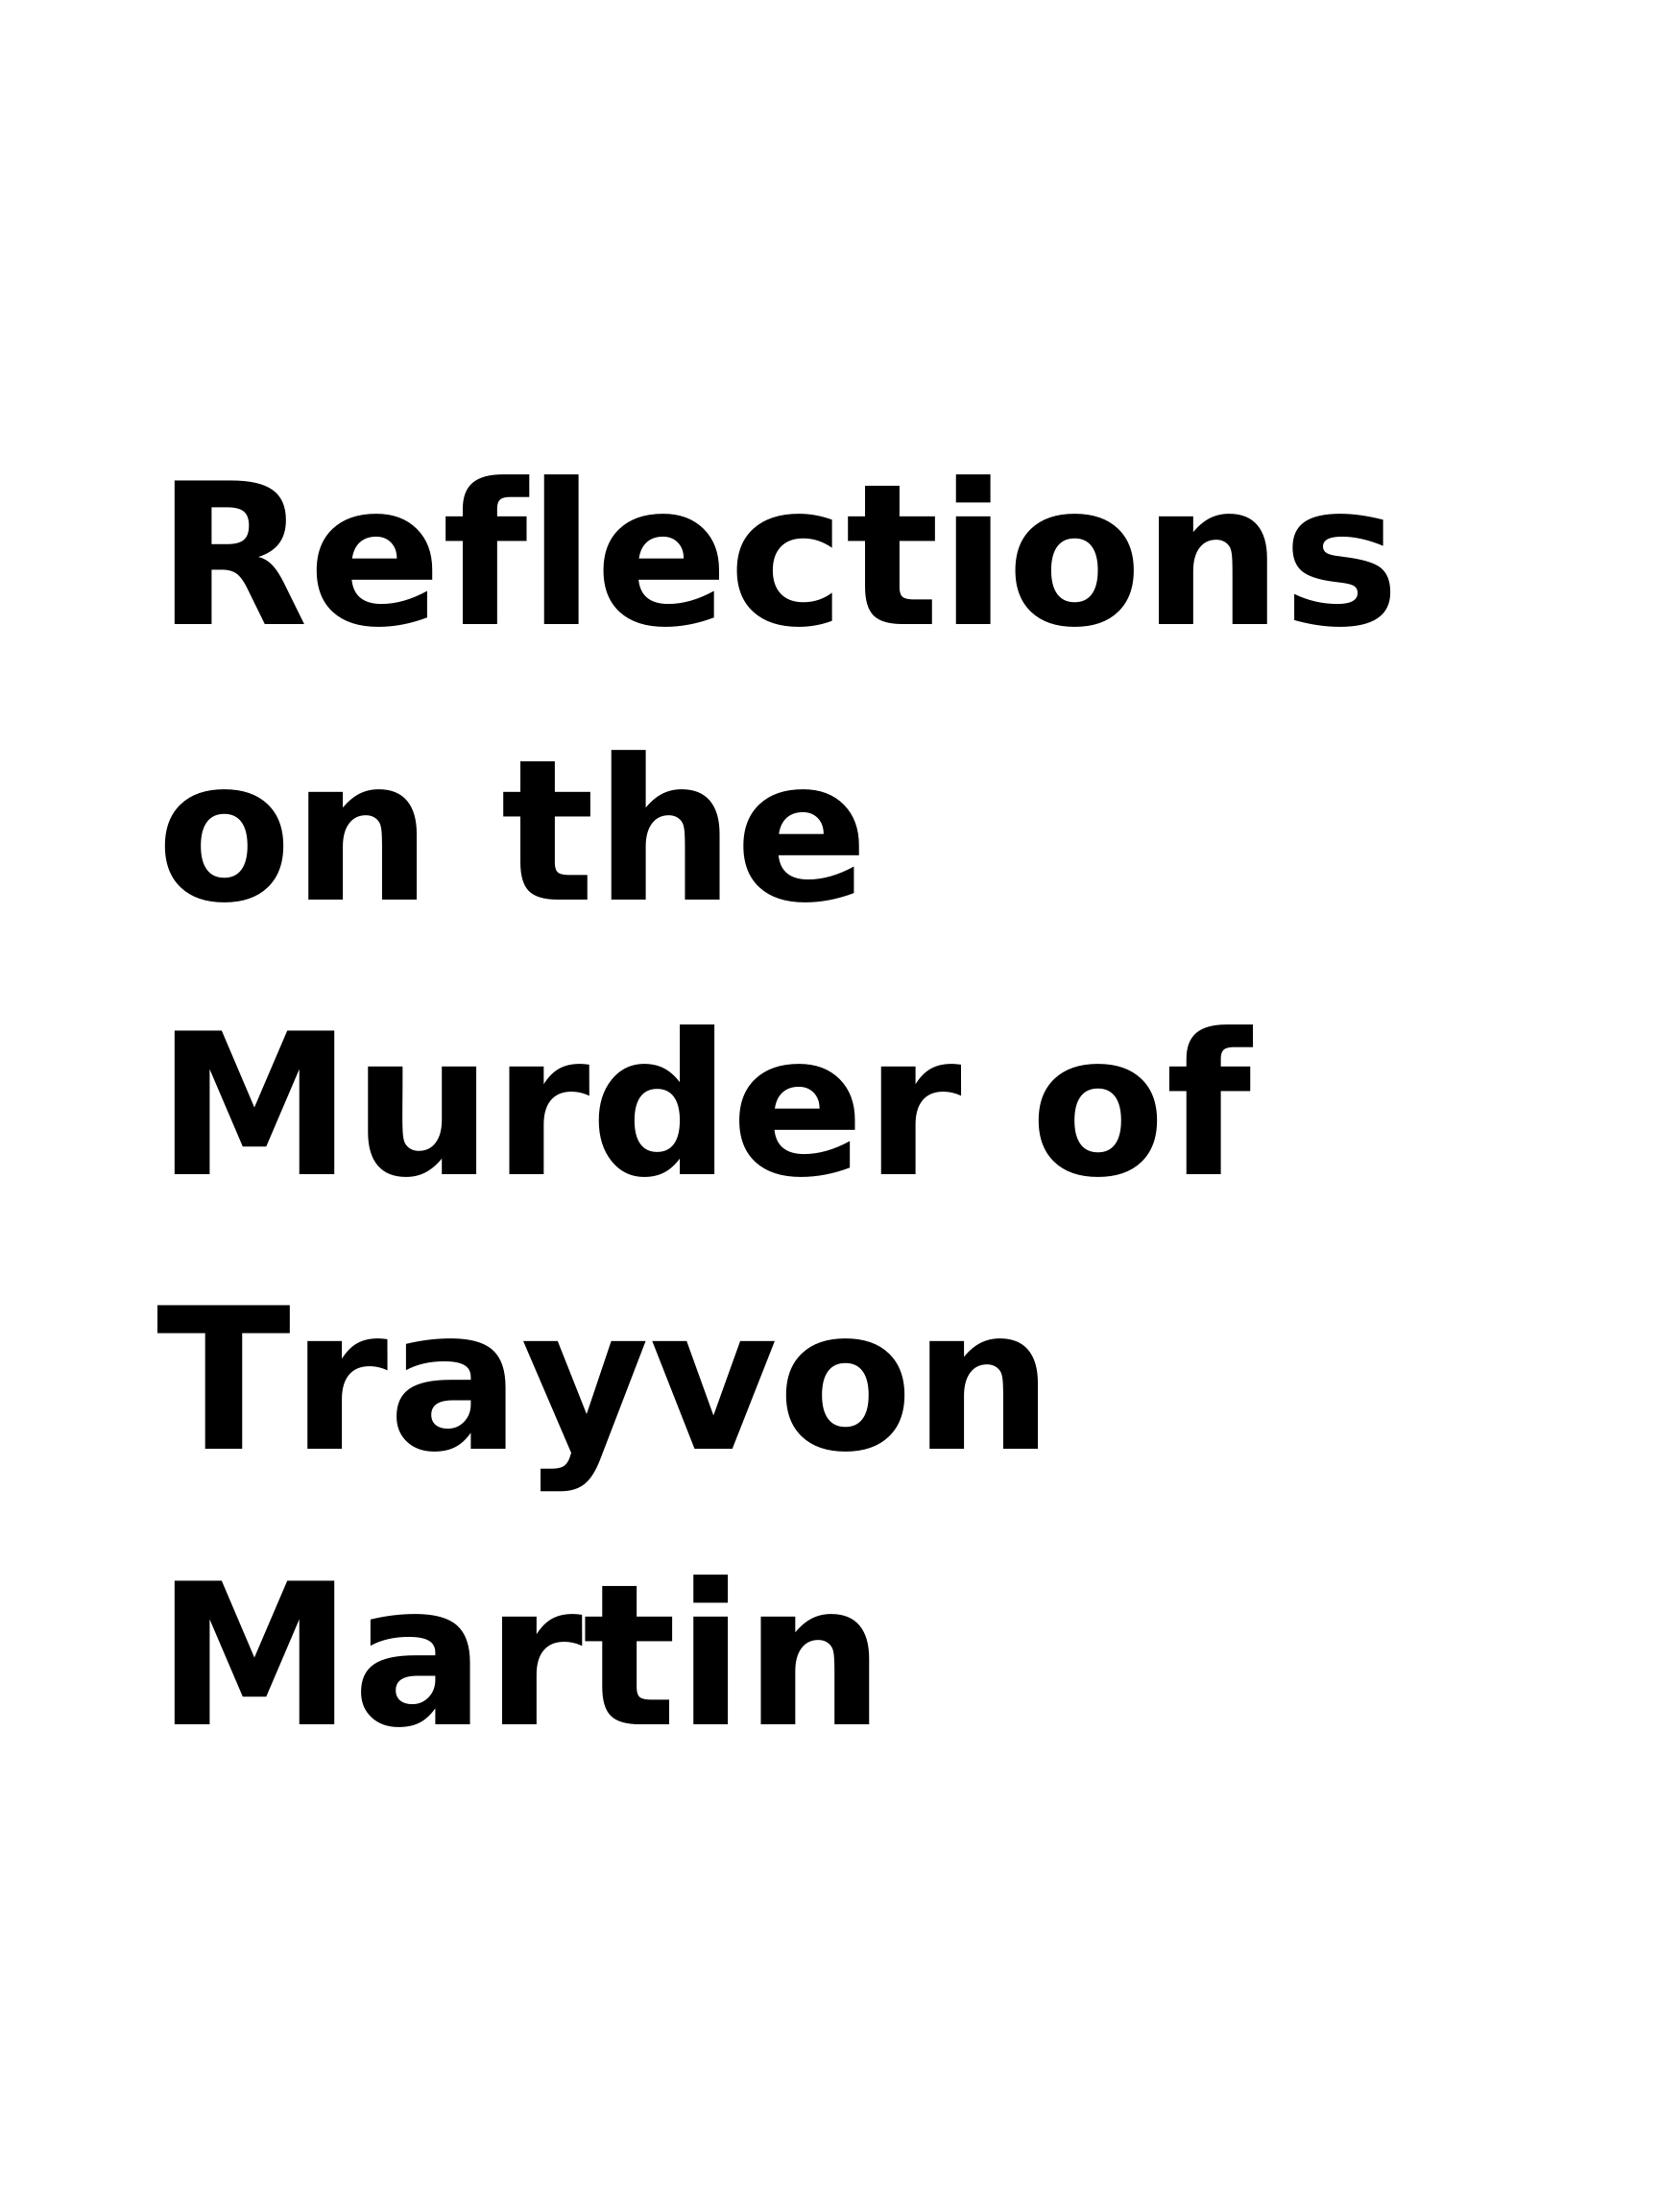 Reflections on the Murder of Trayvon Martin